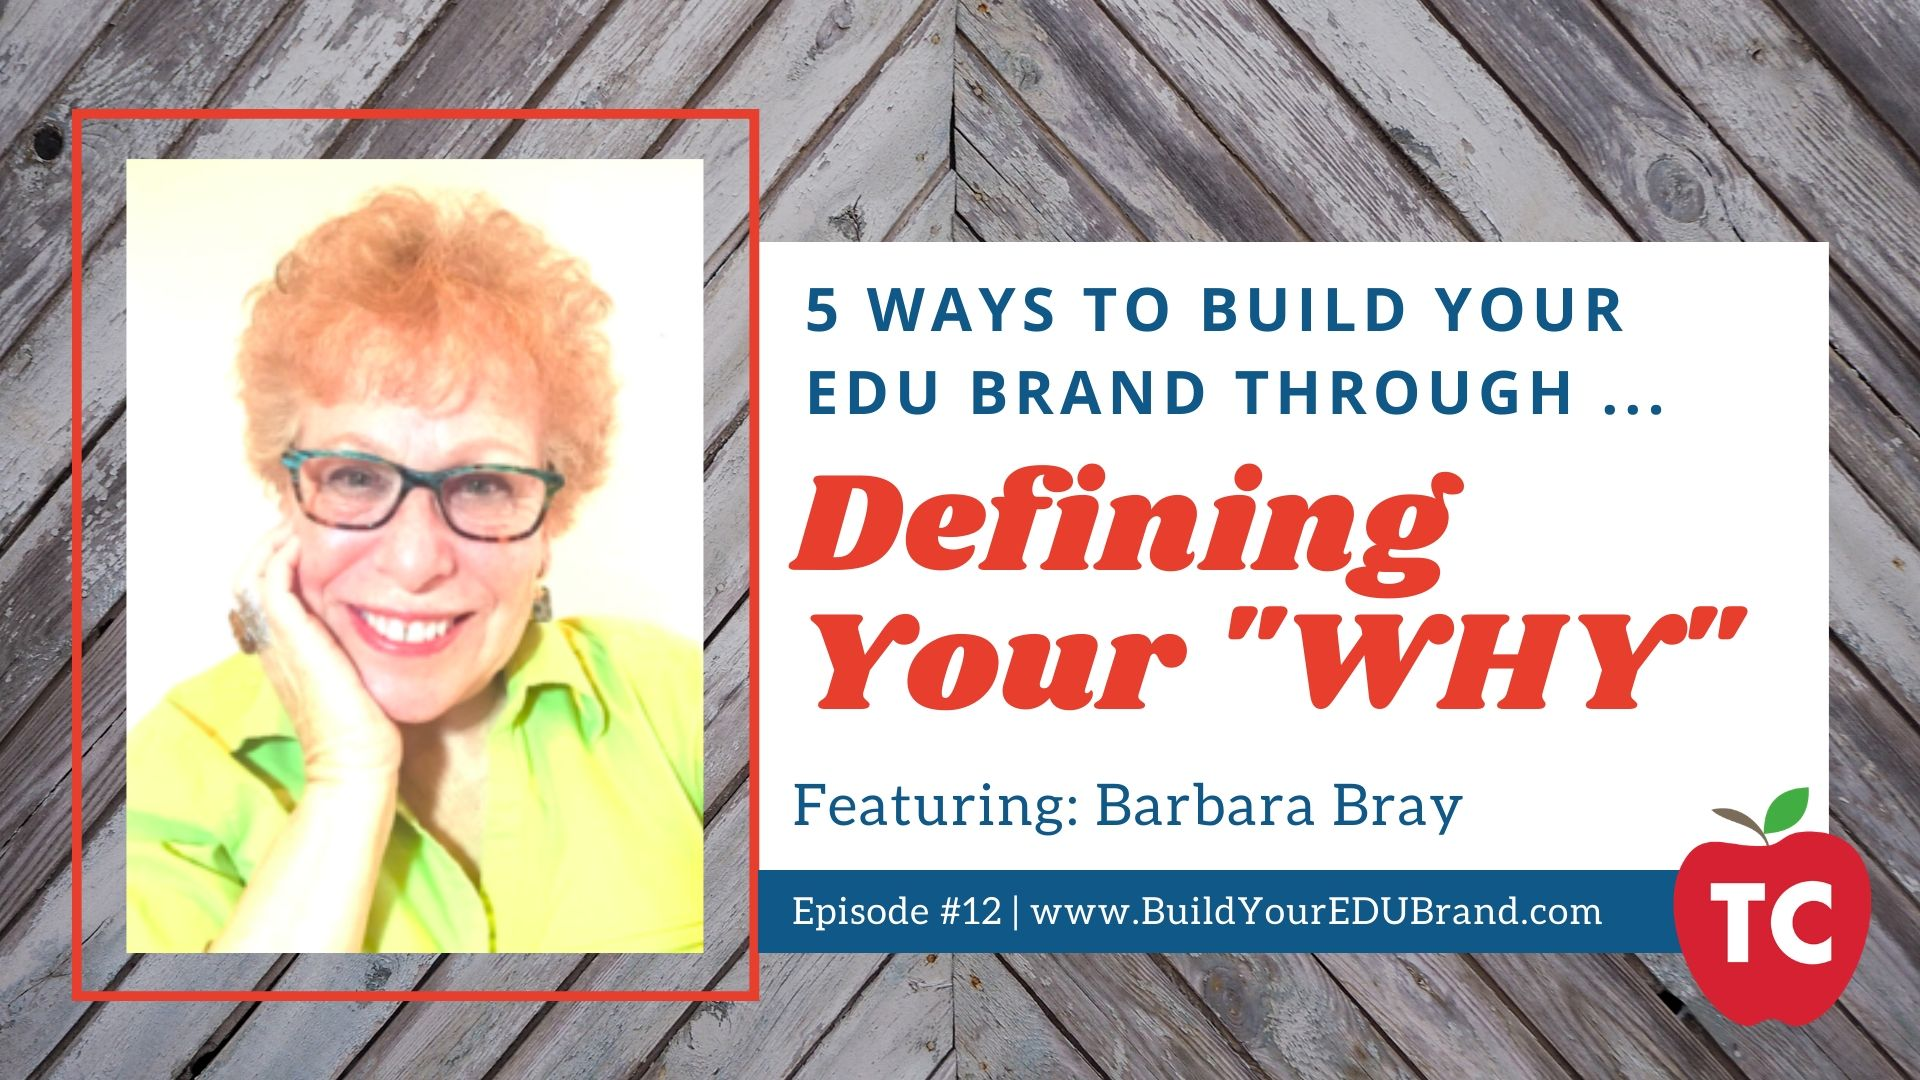 Define Your Why With Barbara Bray